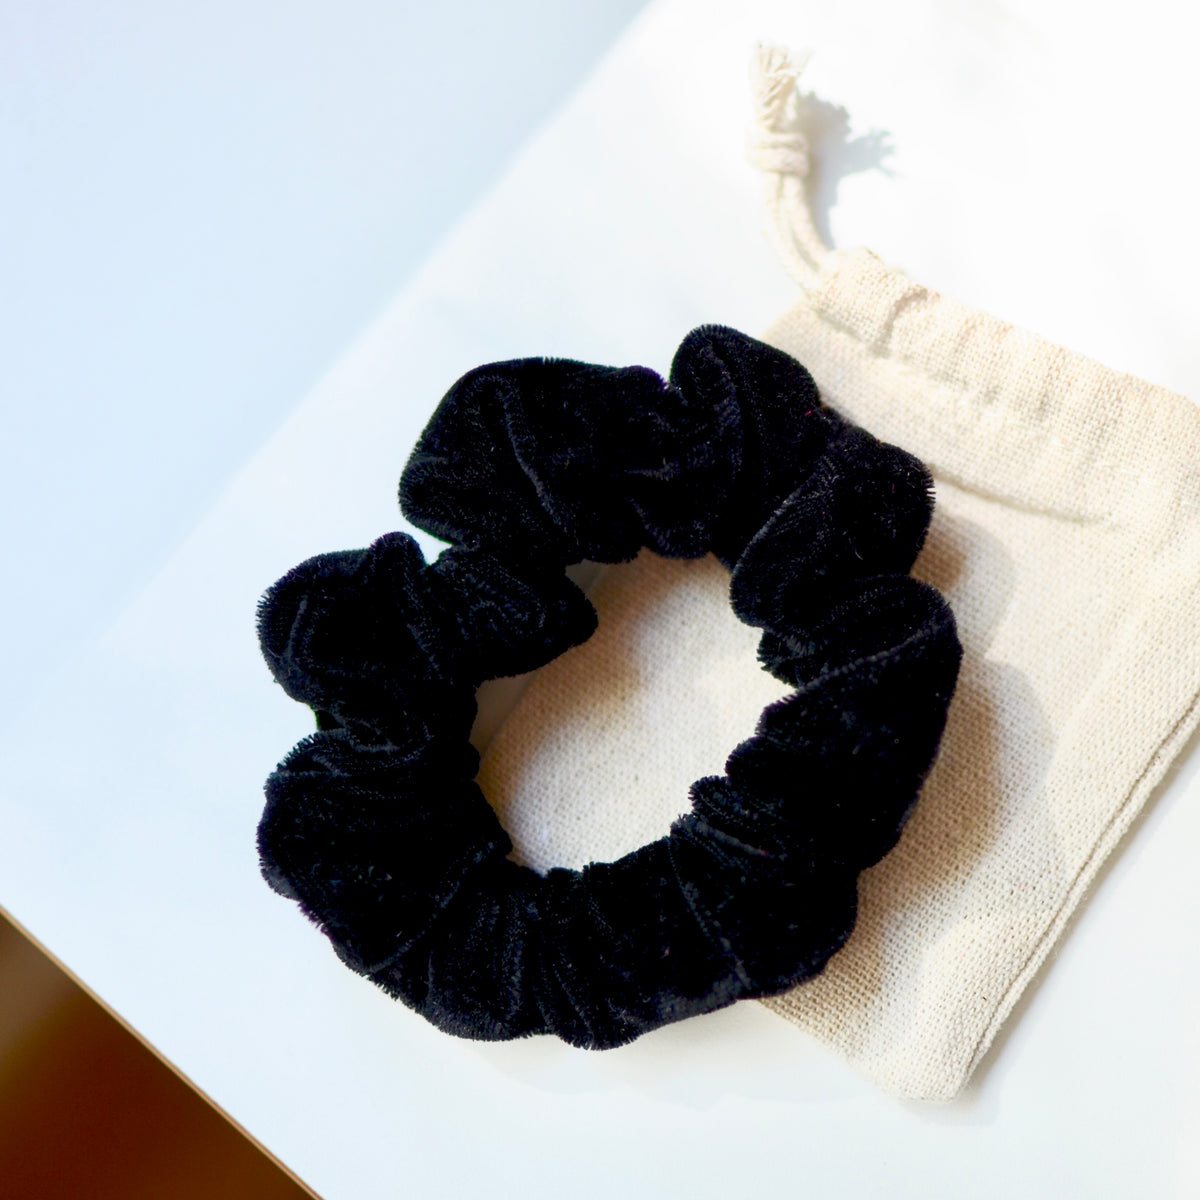 'CHIMNEY SWEEP' - Scrunchie